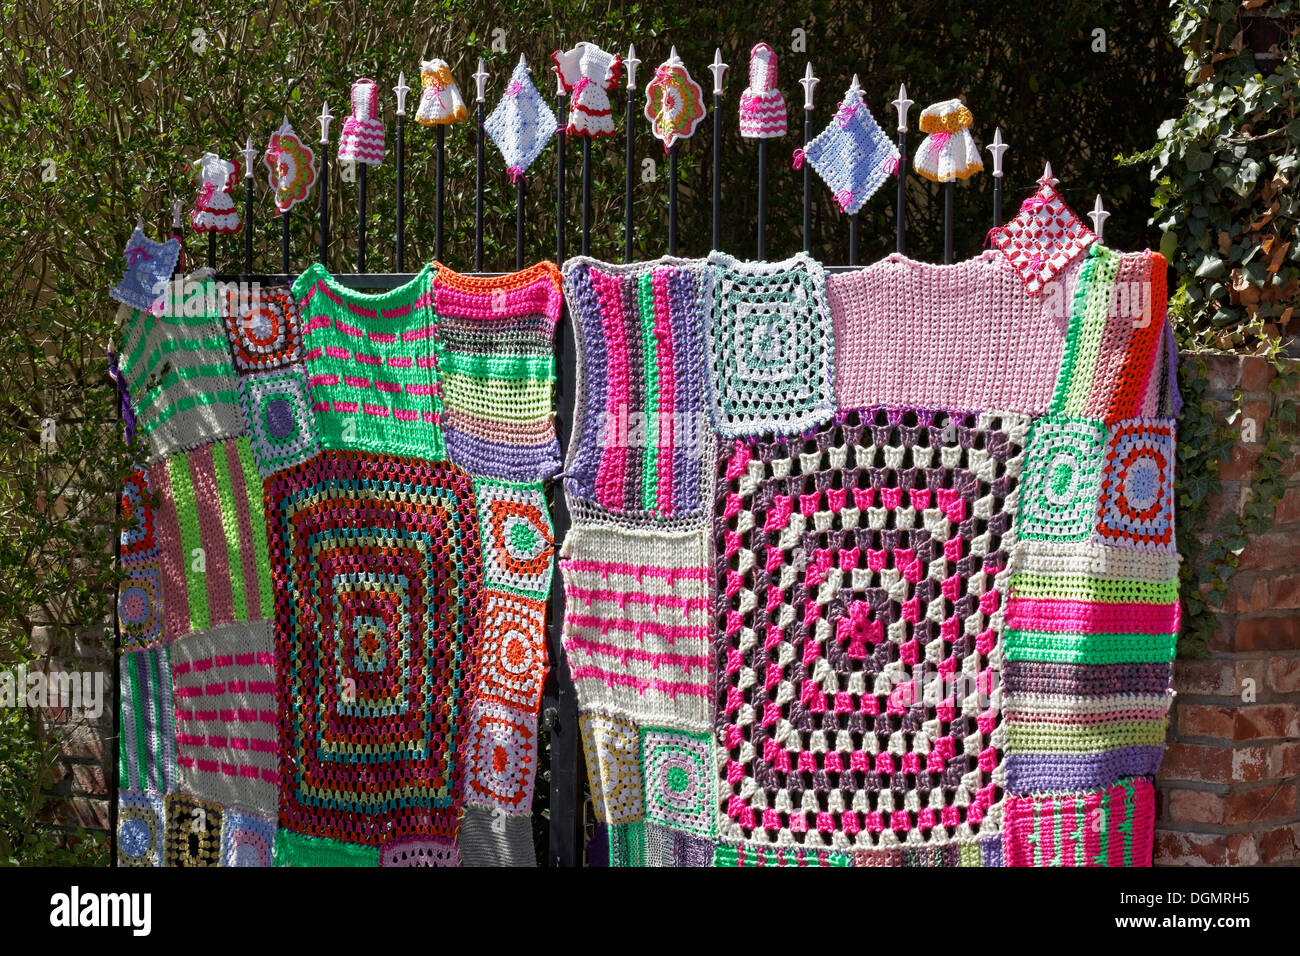 Guerilla Knitting Patterns : Knitted iron gate with Granny Square pattern, guerrilla knitting Stock Photo,...